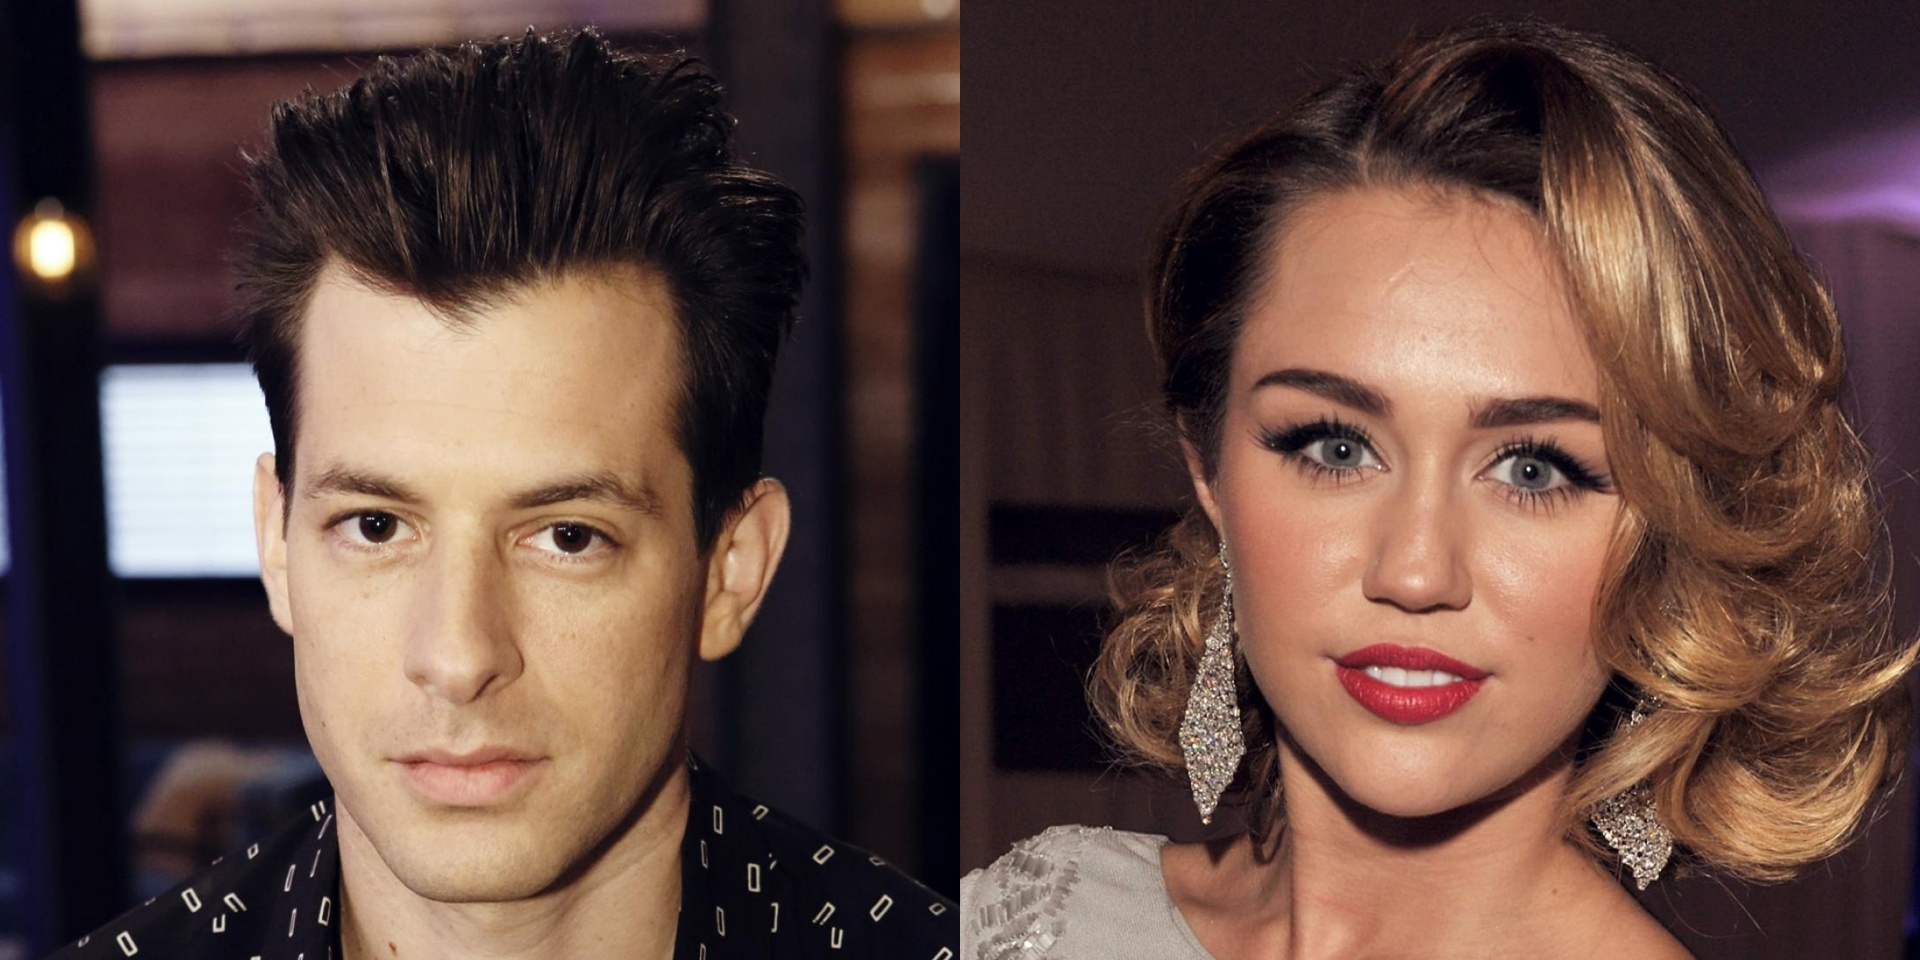 Mark Ronson releases new single featuring Miley Cyrus, 'Nothing Breaks Like A Heart', shares music video – watch